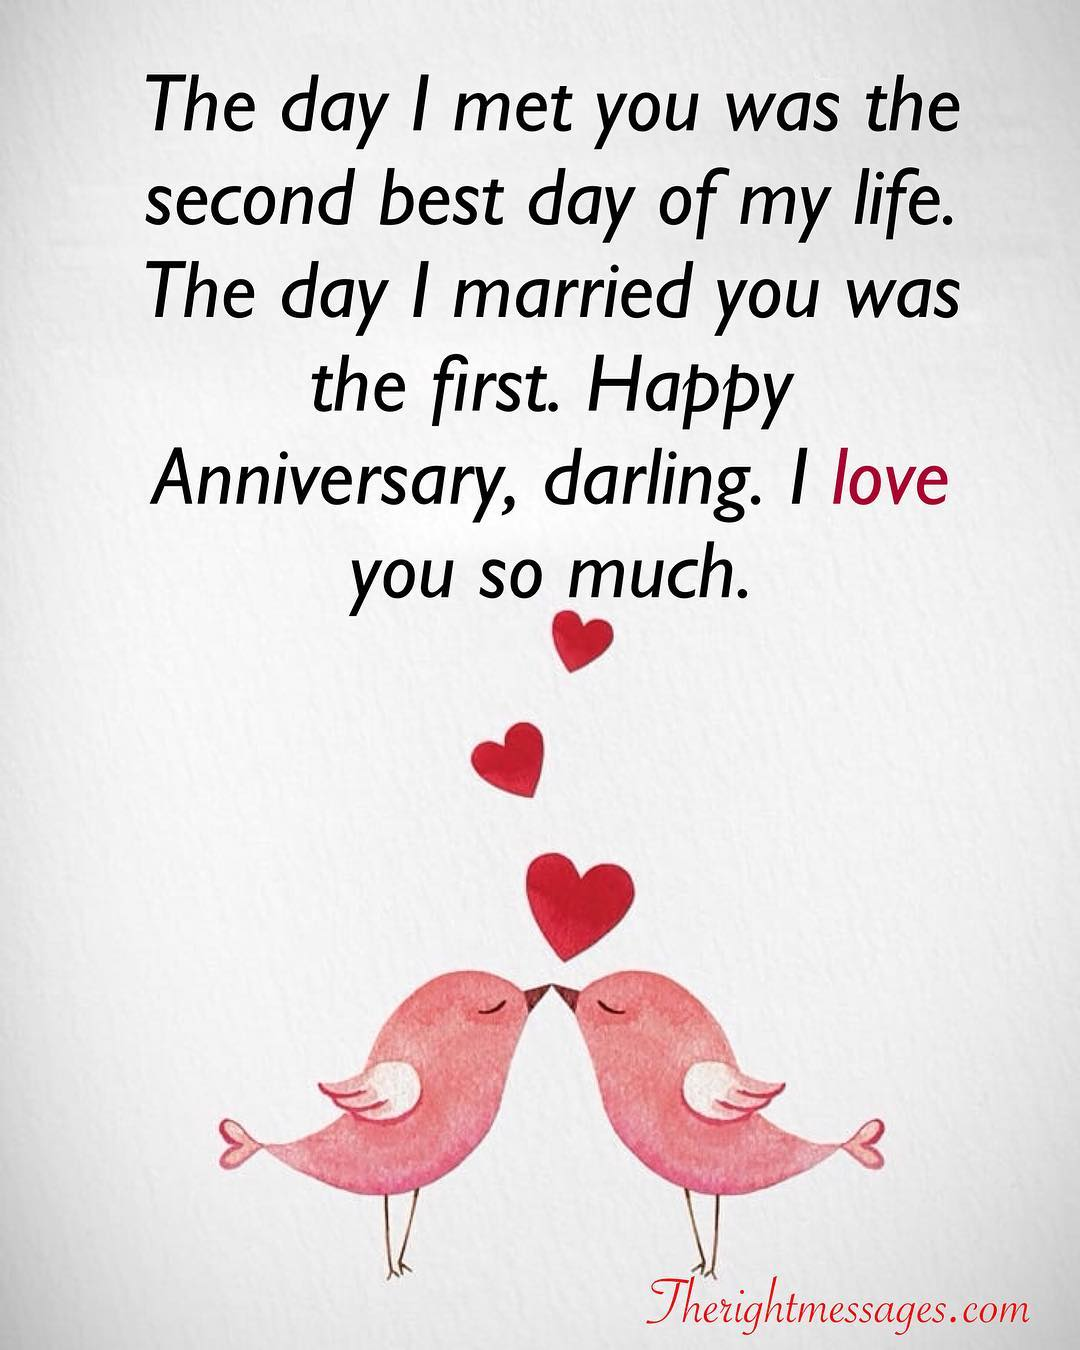 23 Best Wedding Anniversary Wishes & Messages